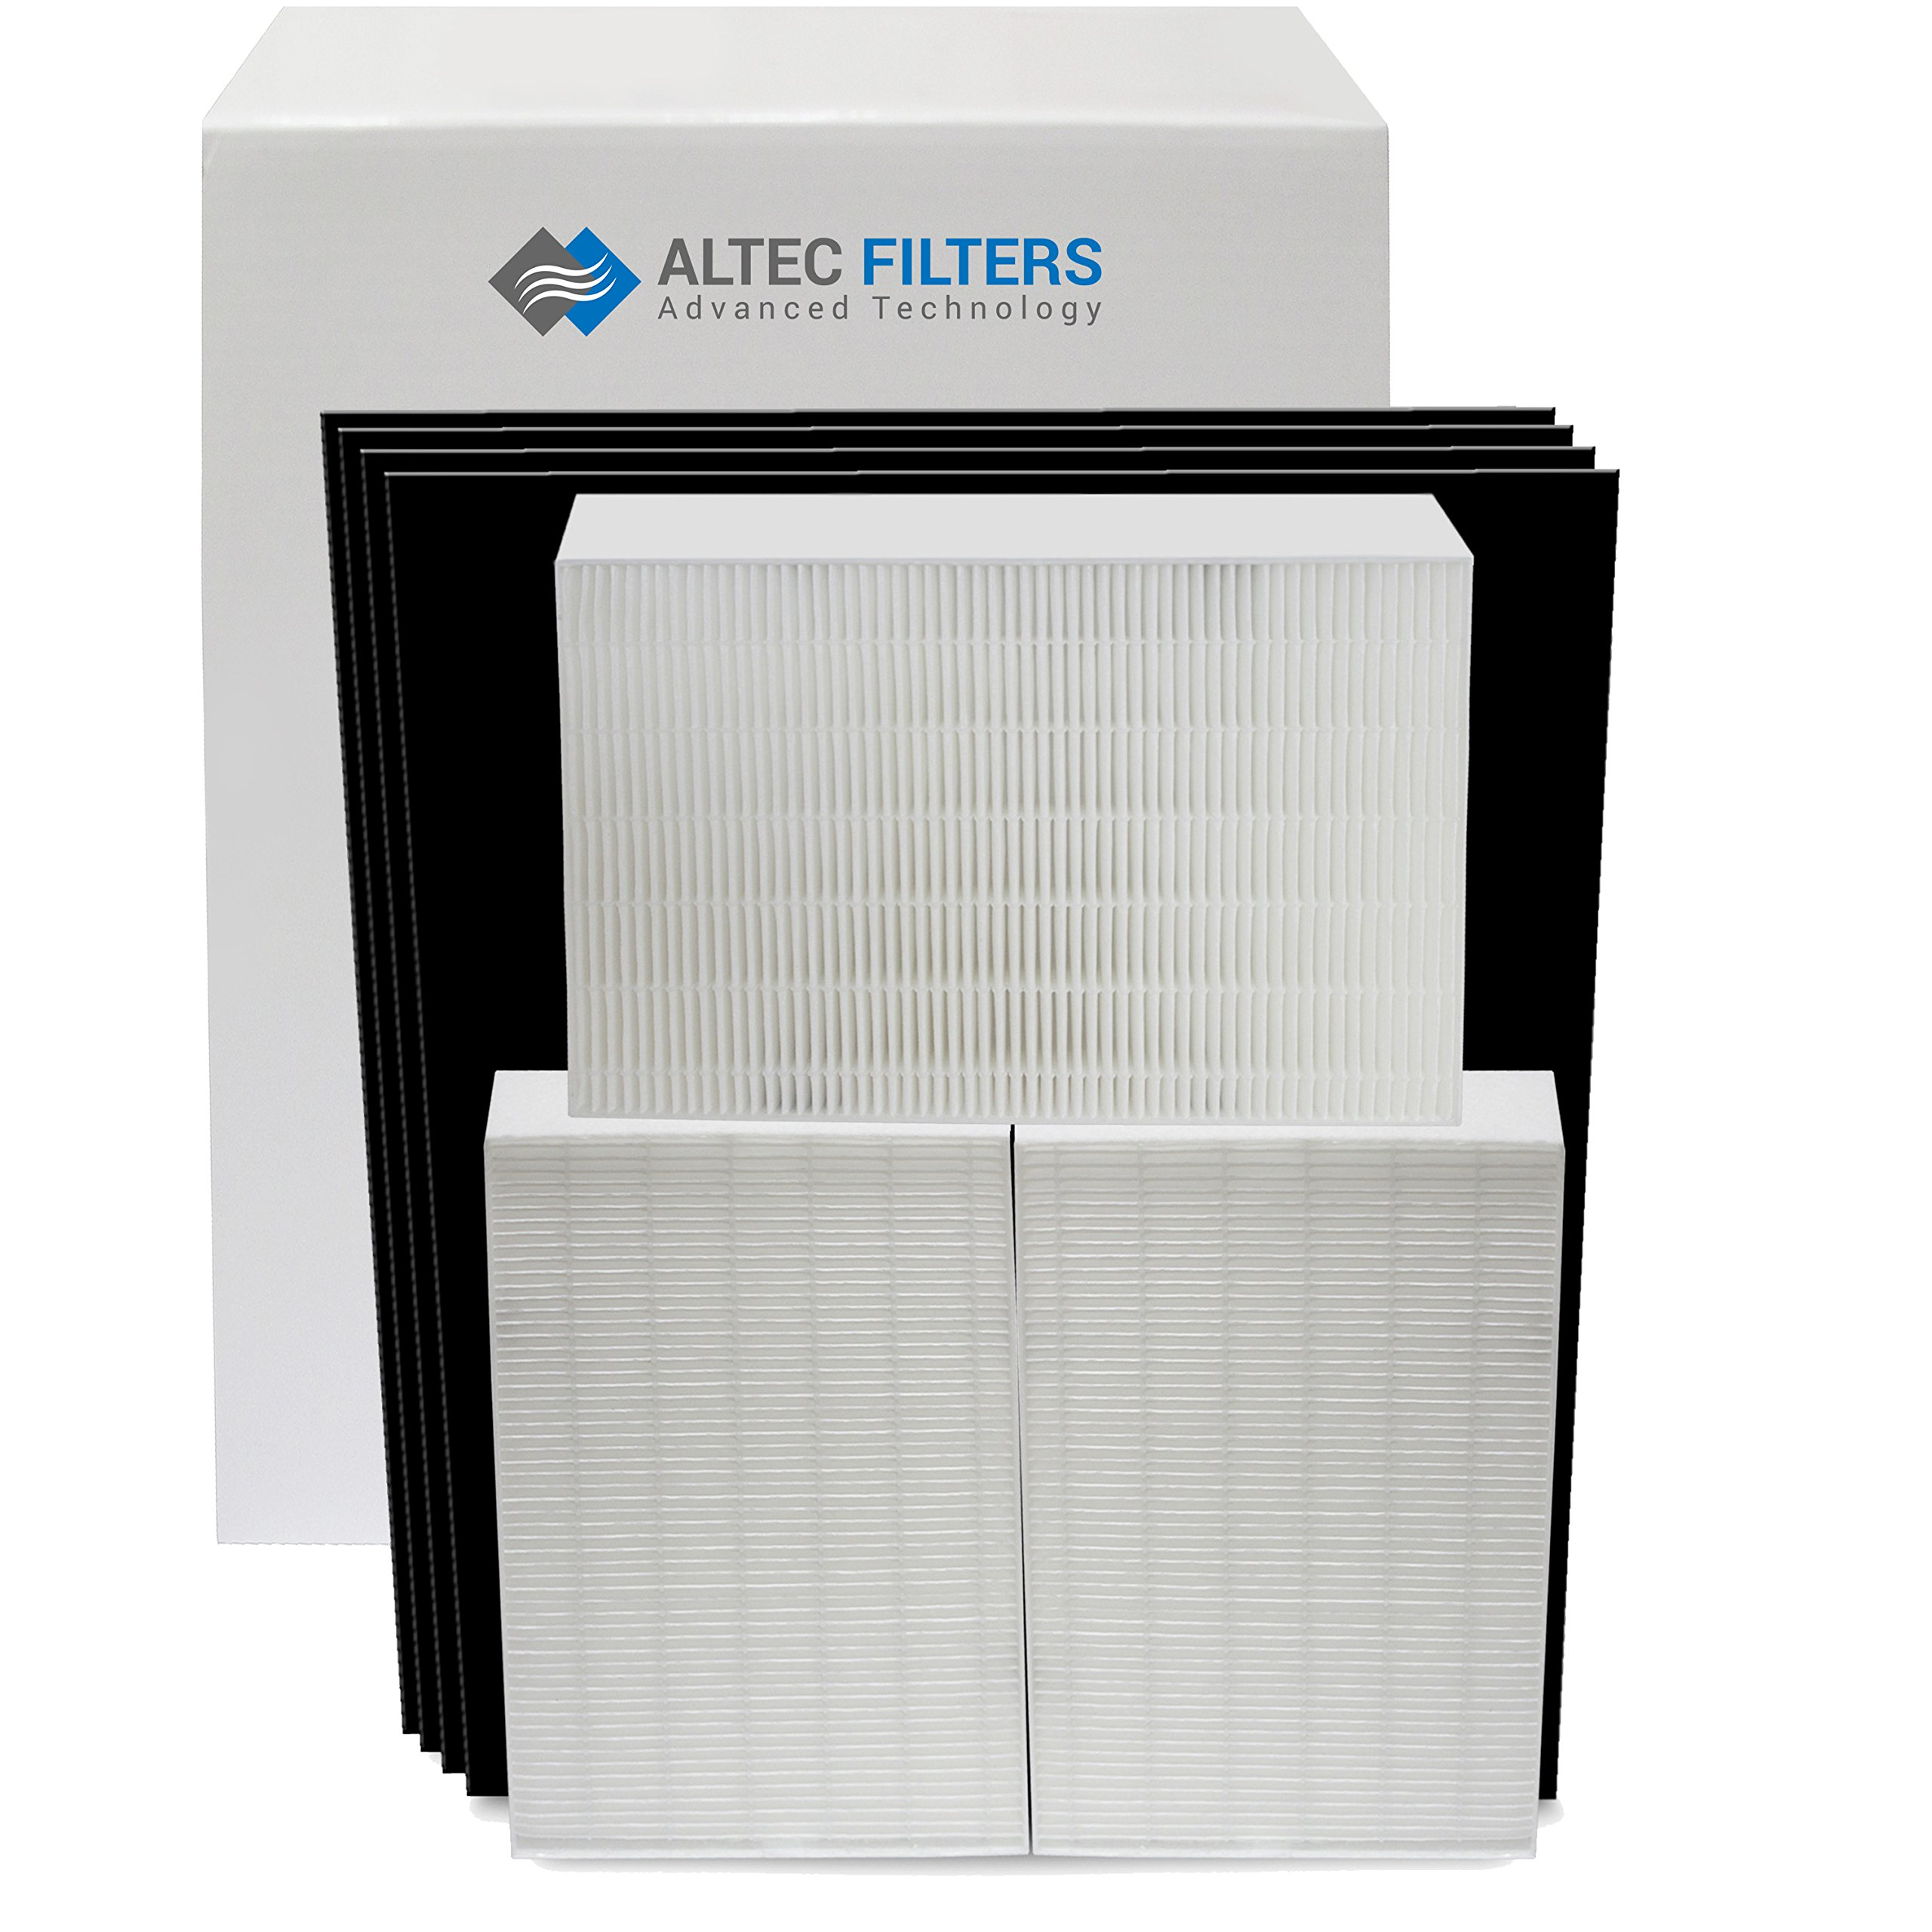 Replacement Filters Bundle for Honeywell HPA300 Air Purifier 3 True HEPA Filters Plus 4 Activated Carbon Prefilters